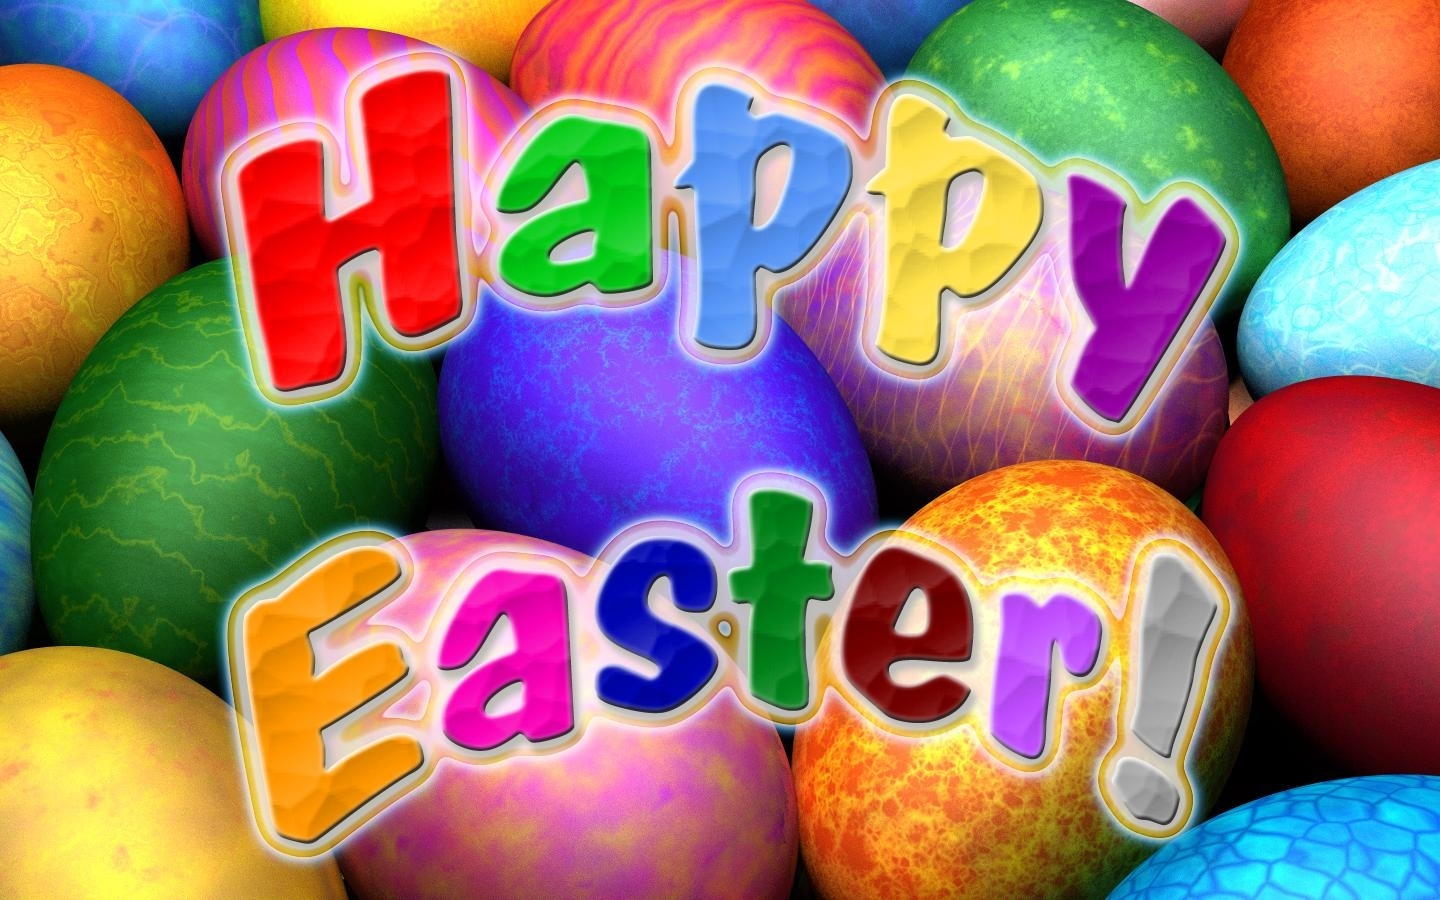 10 new free easter wallpaper for computer full hd 1920×1080 for pc